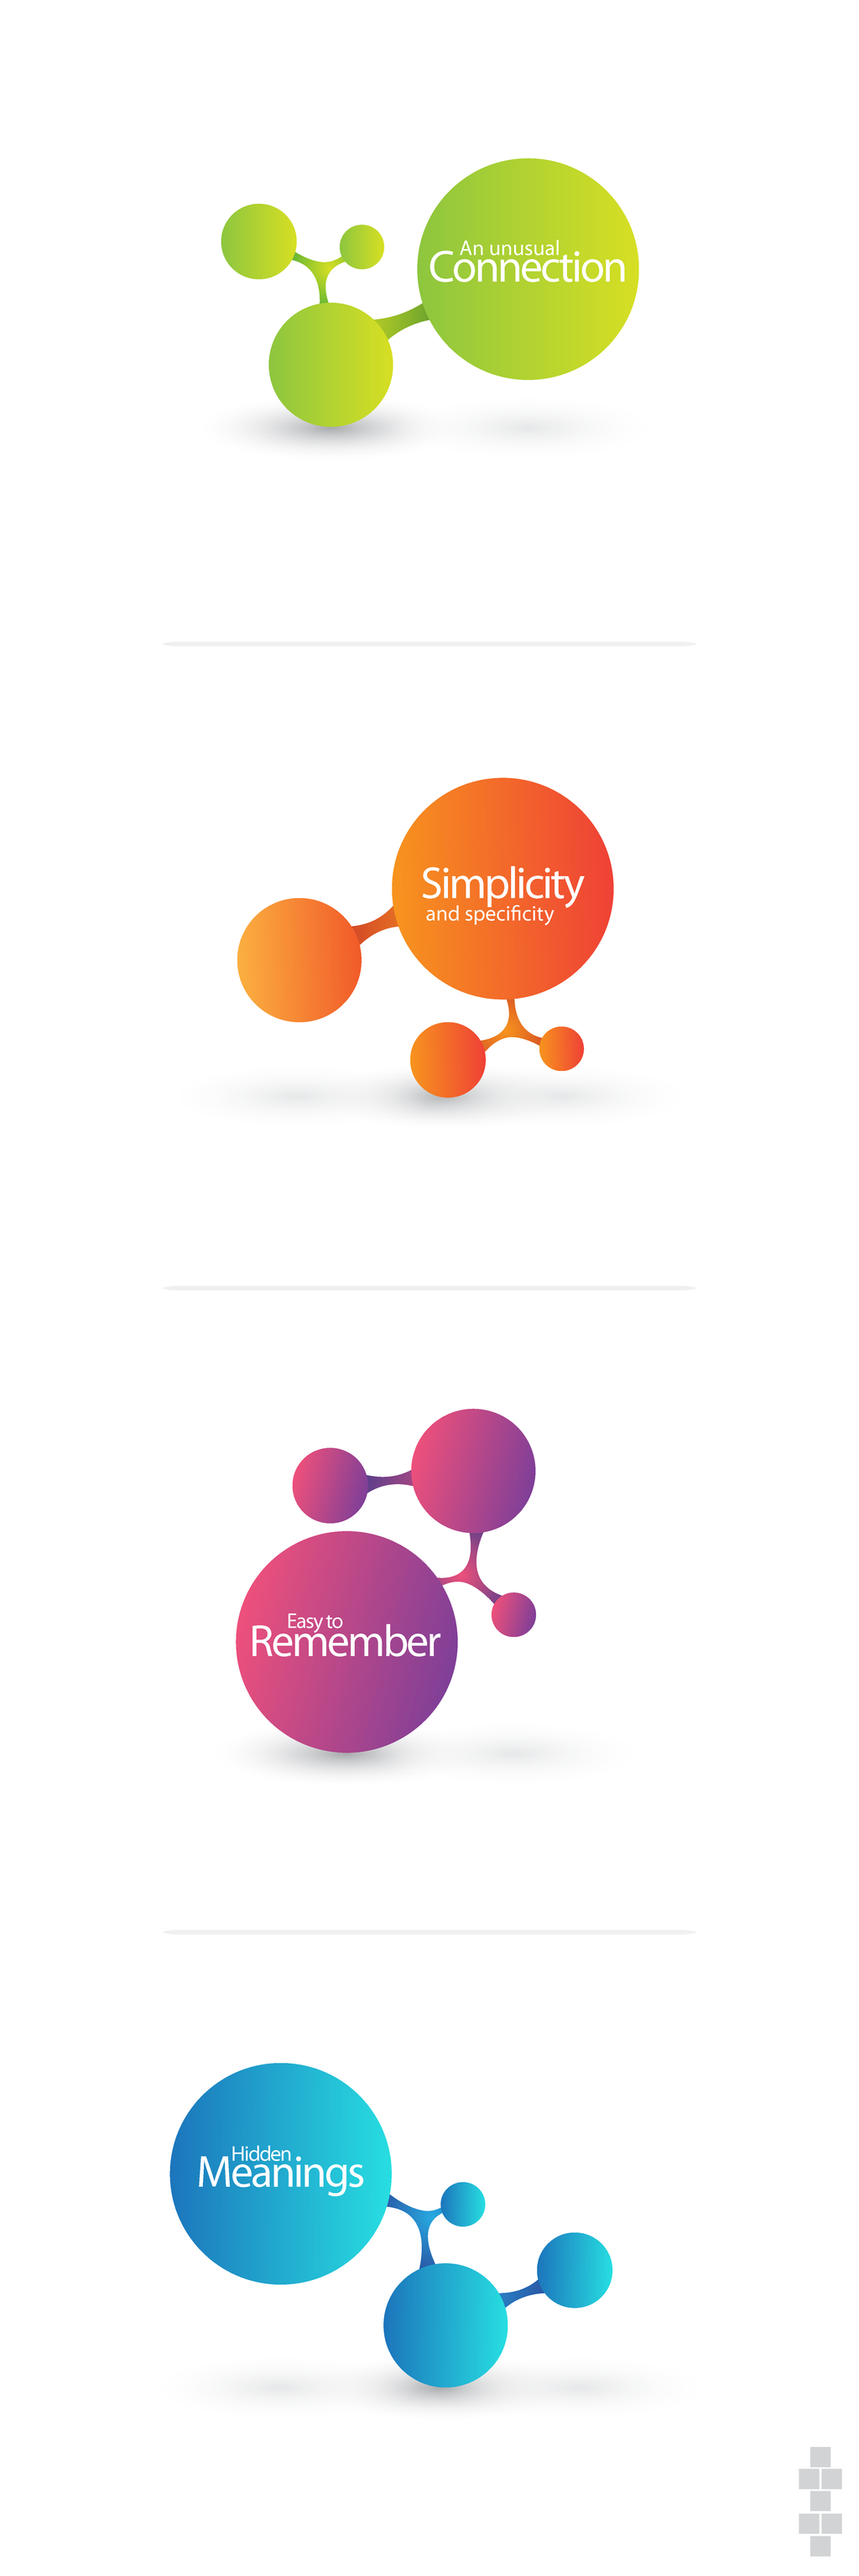 Logo Design  Project - Four main steps - PART 2 by RaymondGD